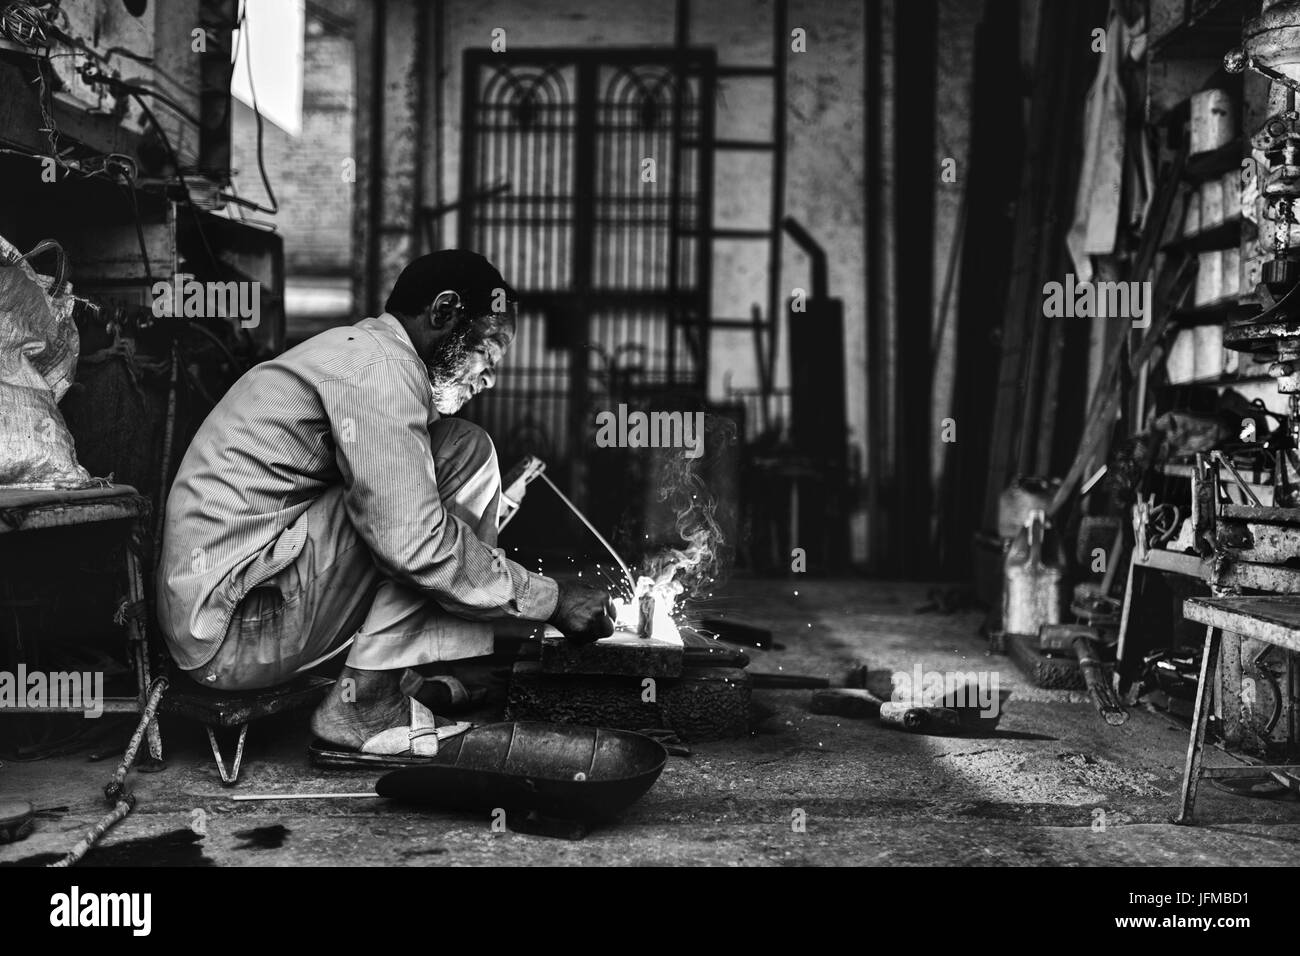 Asia, India, Varanasi district, Man at work - Stock Image